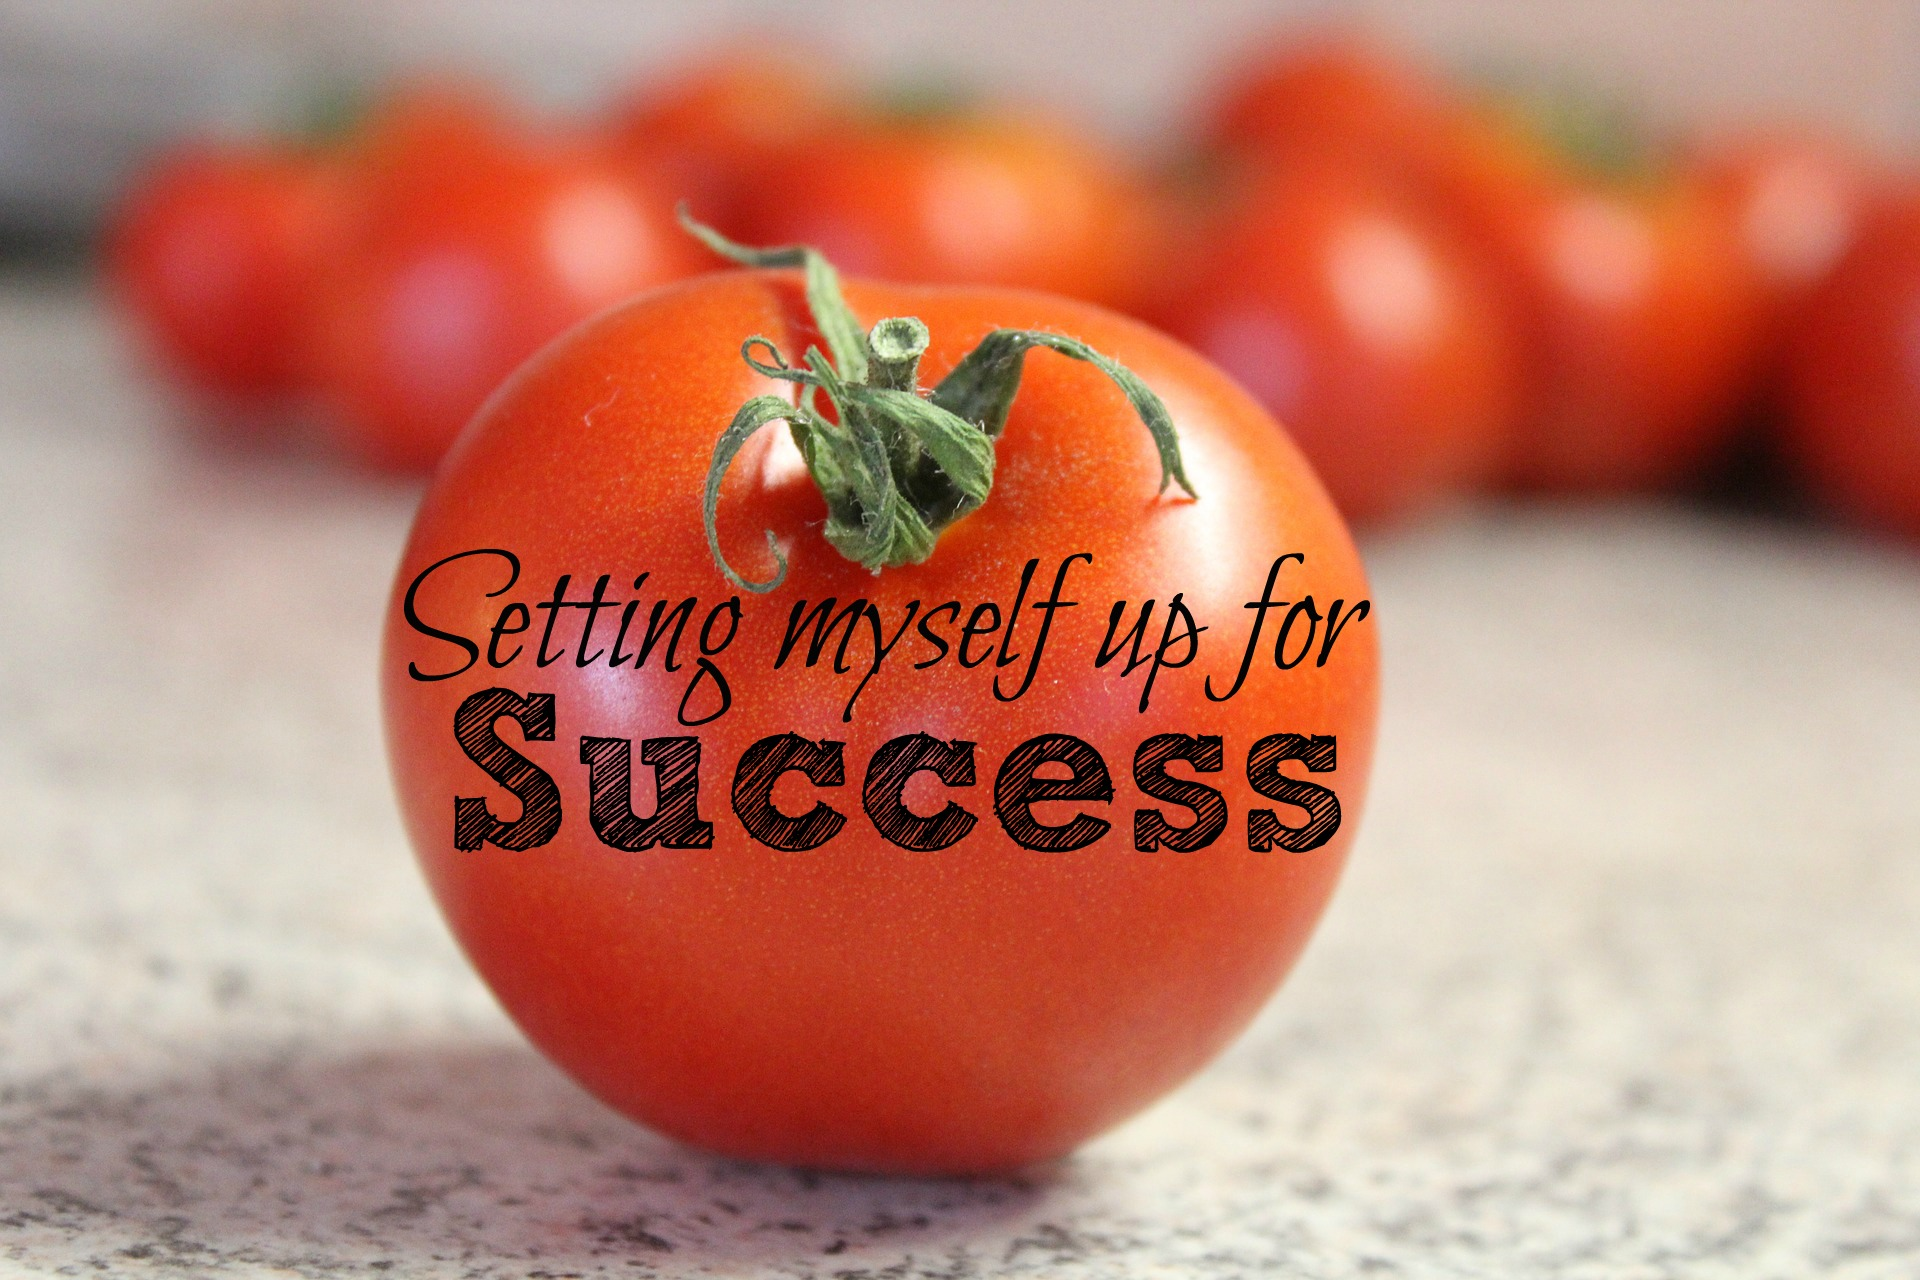 Setting Myself Up For Success with a daily success plan is the action part of getting on with your goals. It's setting that daily intention to take one (or three) steps closer to your goals. It's making it a habit, a daily habit, that over time, leads to extraordinary results.